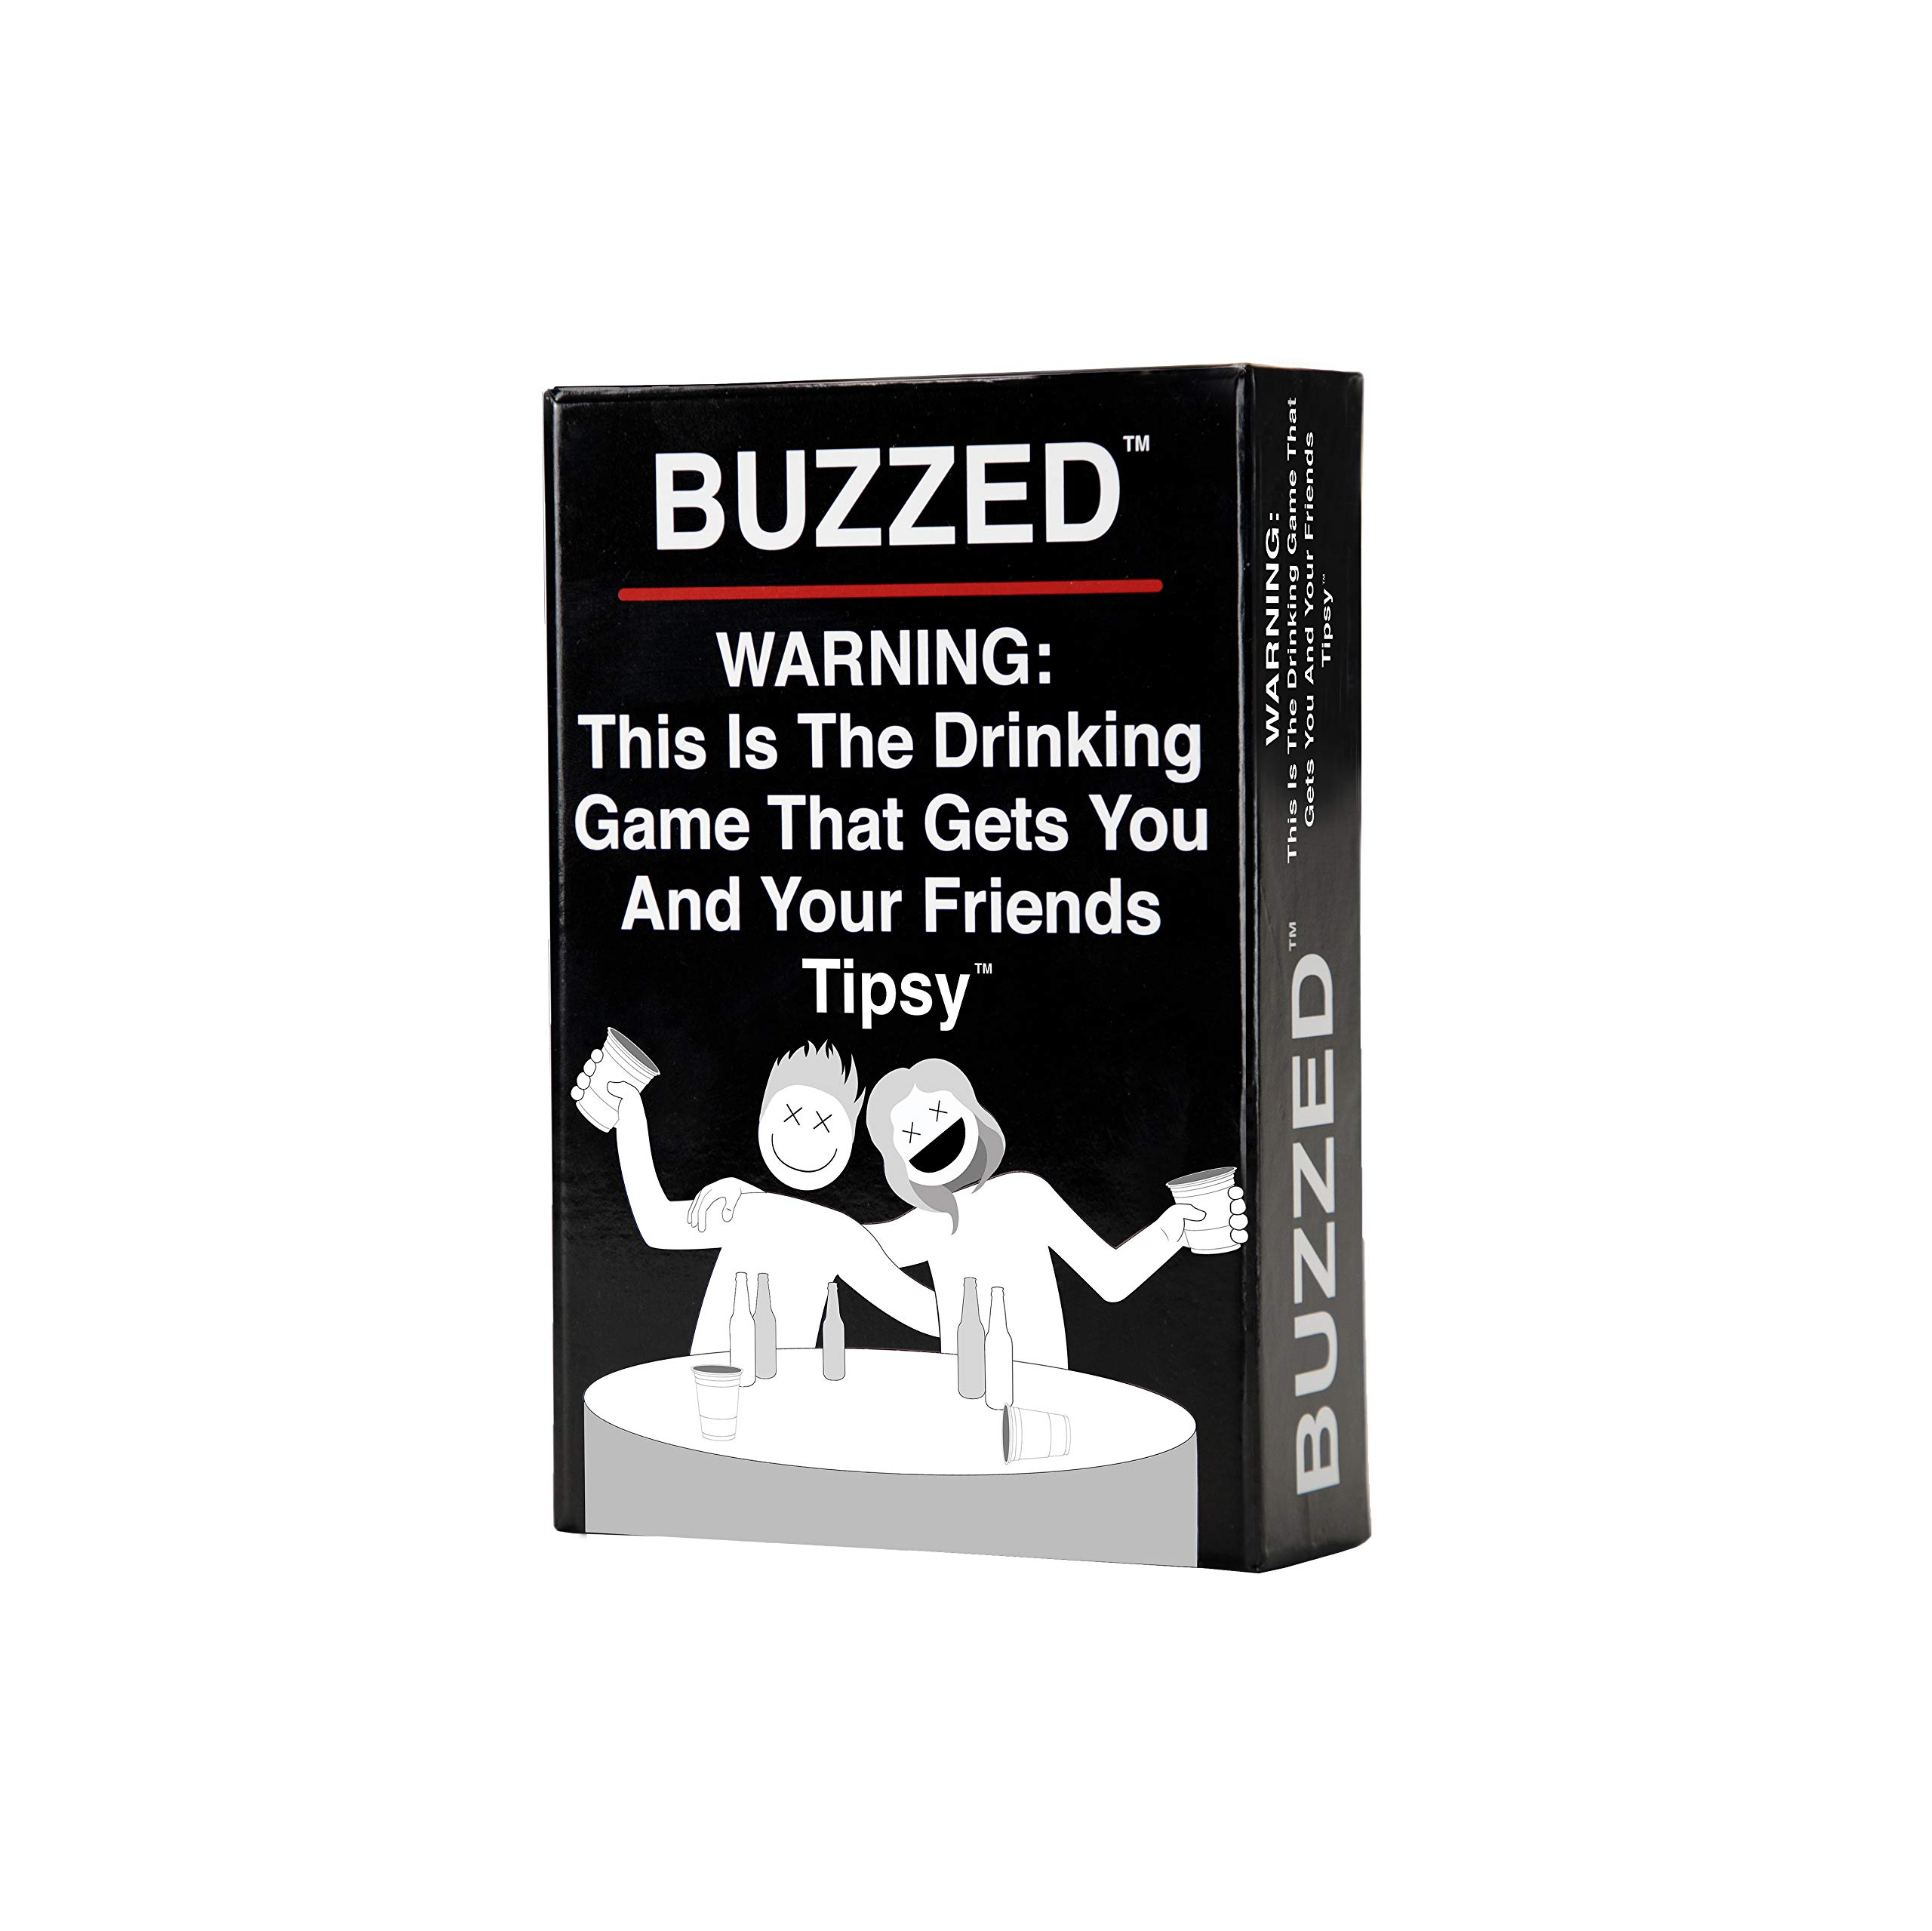 Buzzed – This is The Drinking Game That Gets You and Your Friends Tipsy!